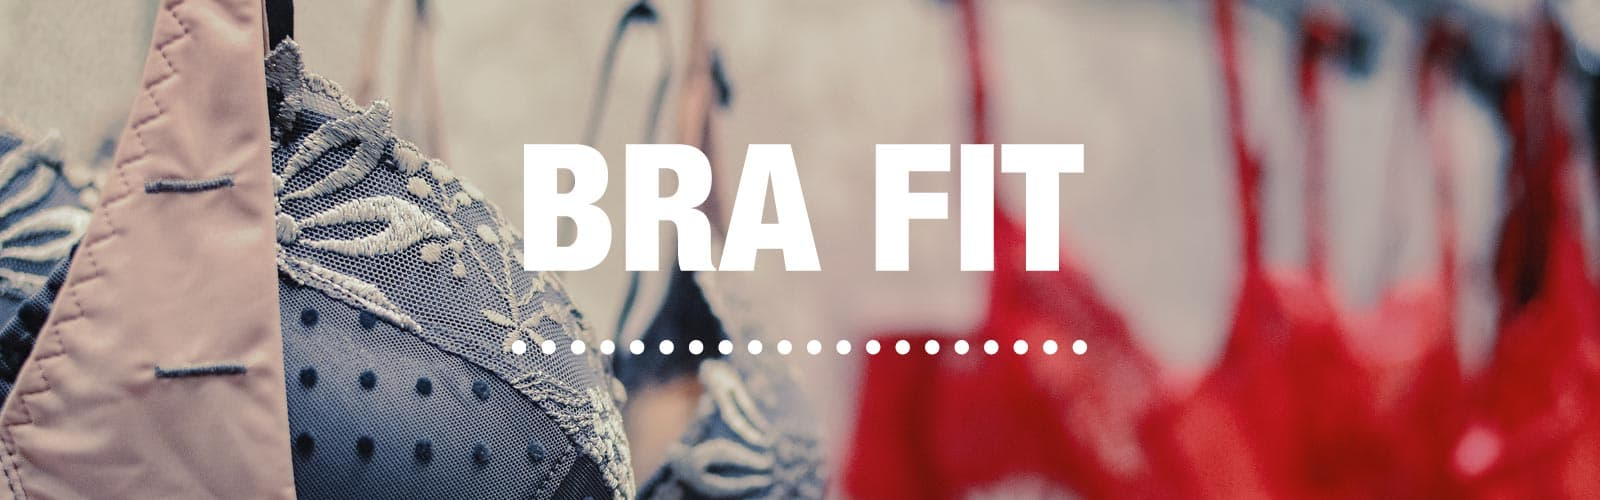 fe6e50855fd14 The Bra Fit Guide  Sierra